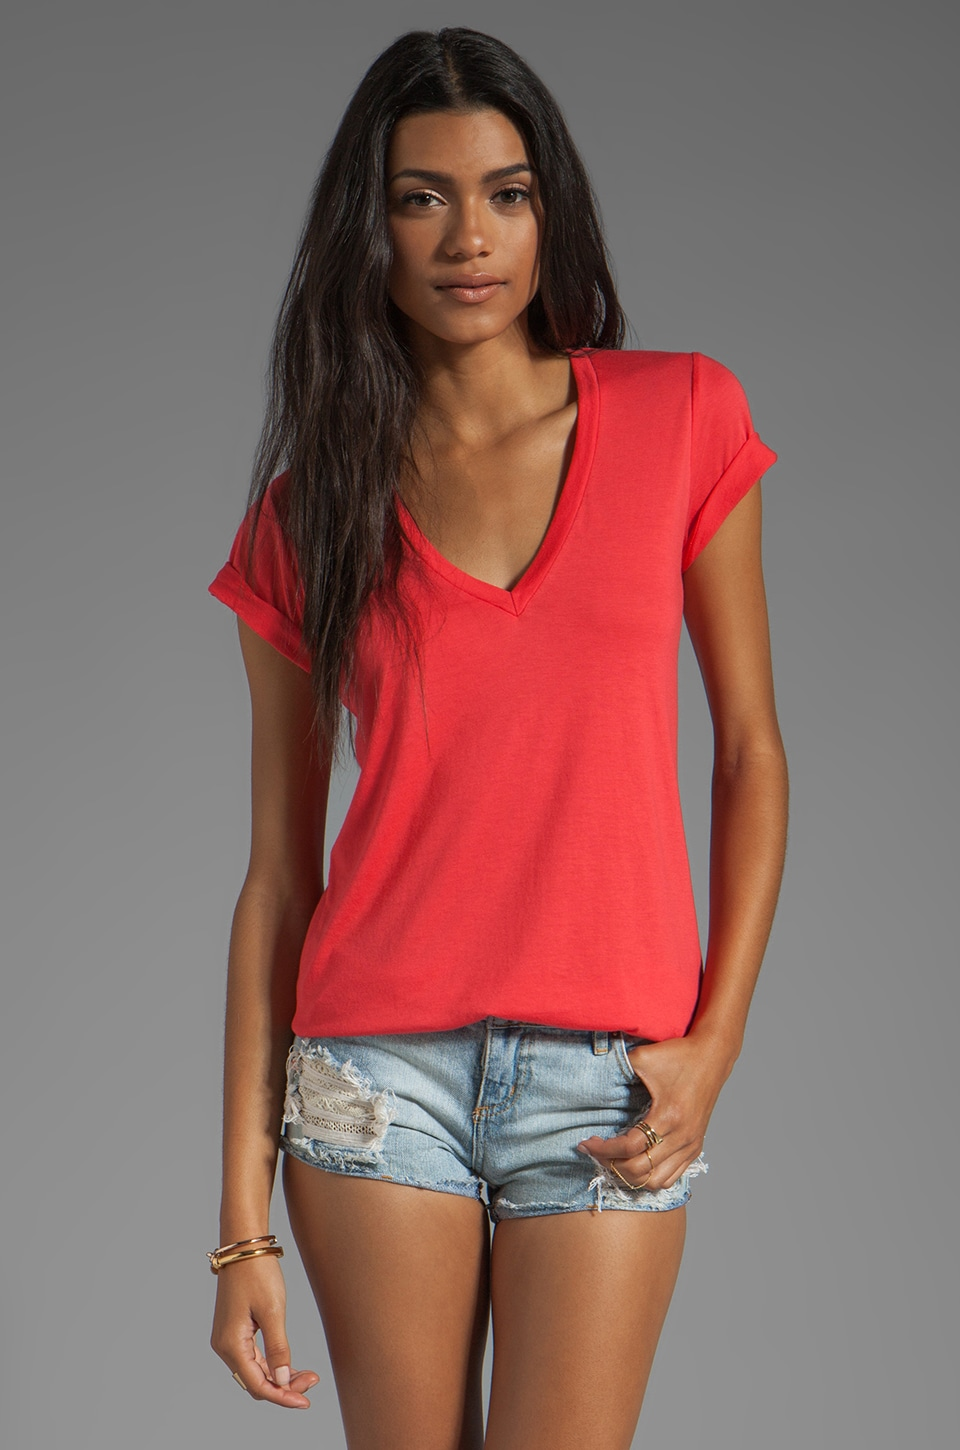 Splendid Very Light Jersey V Neck Top in Bonfire